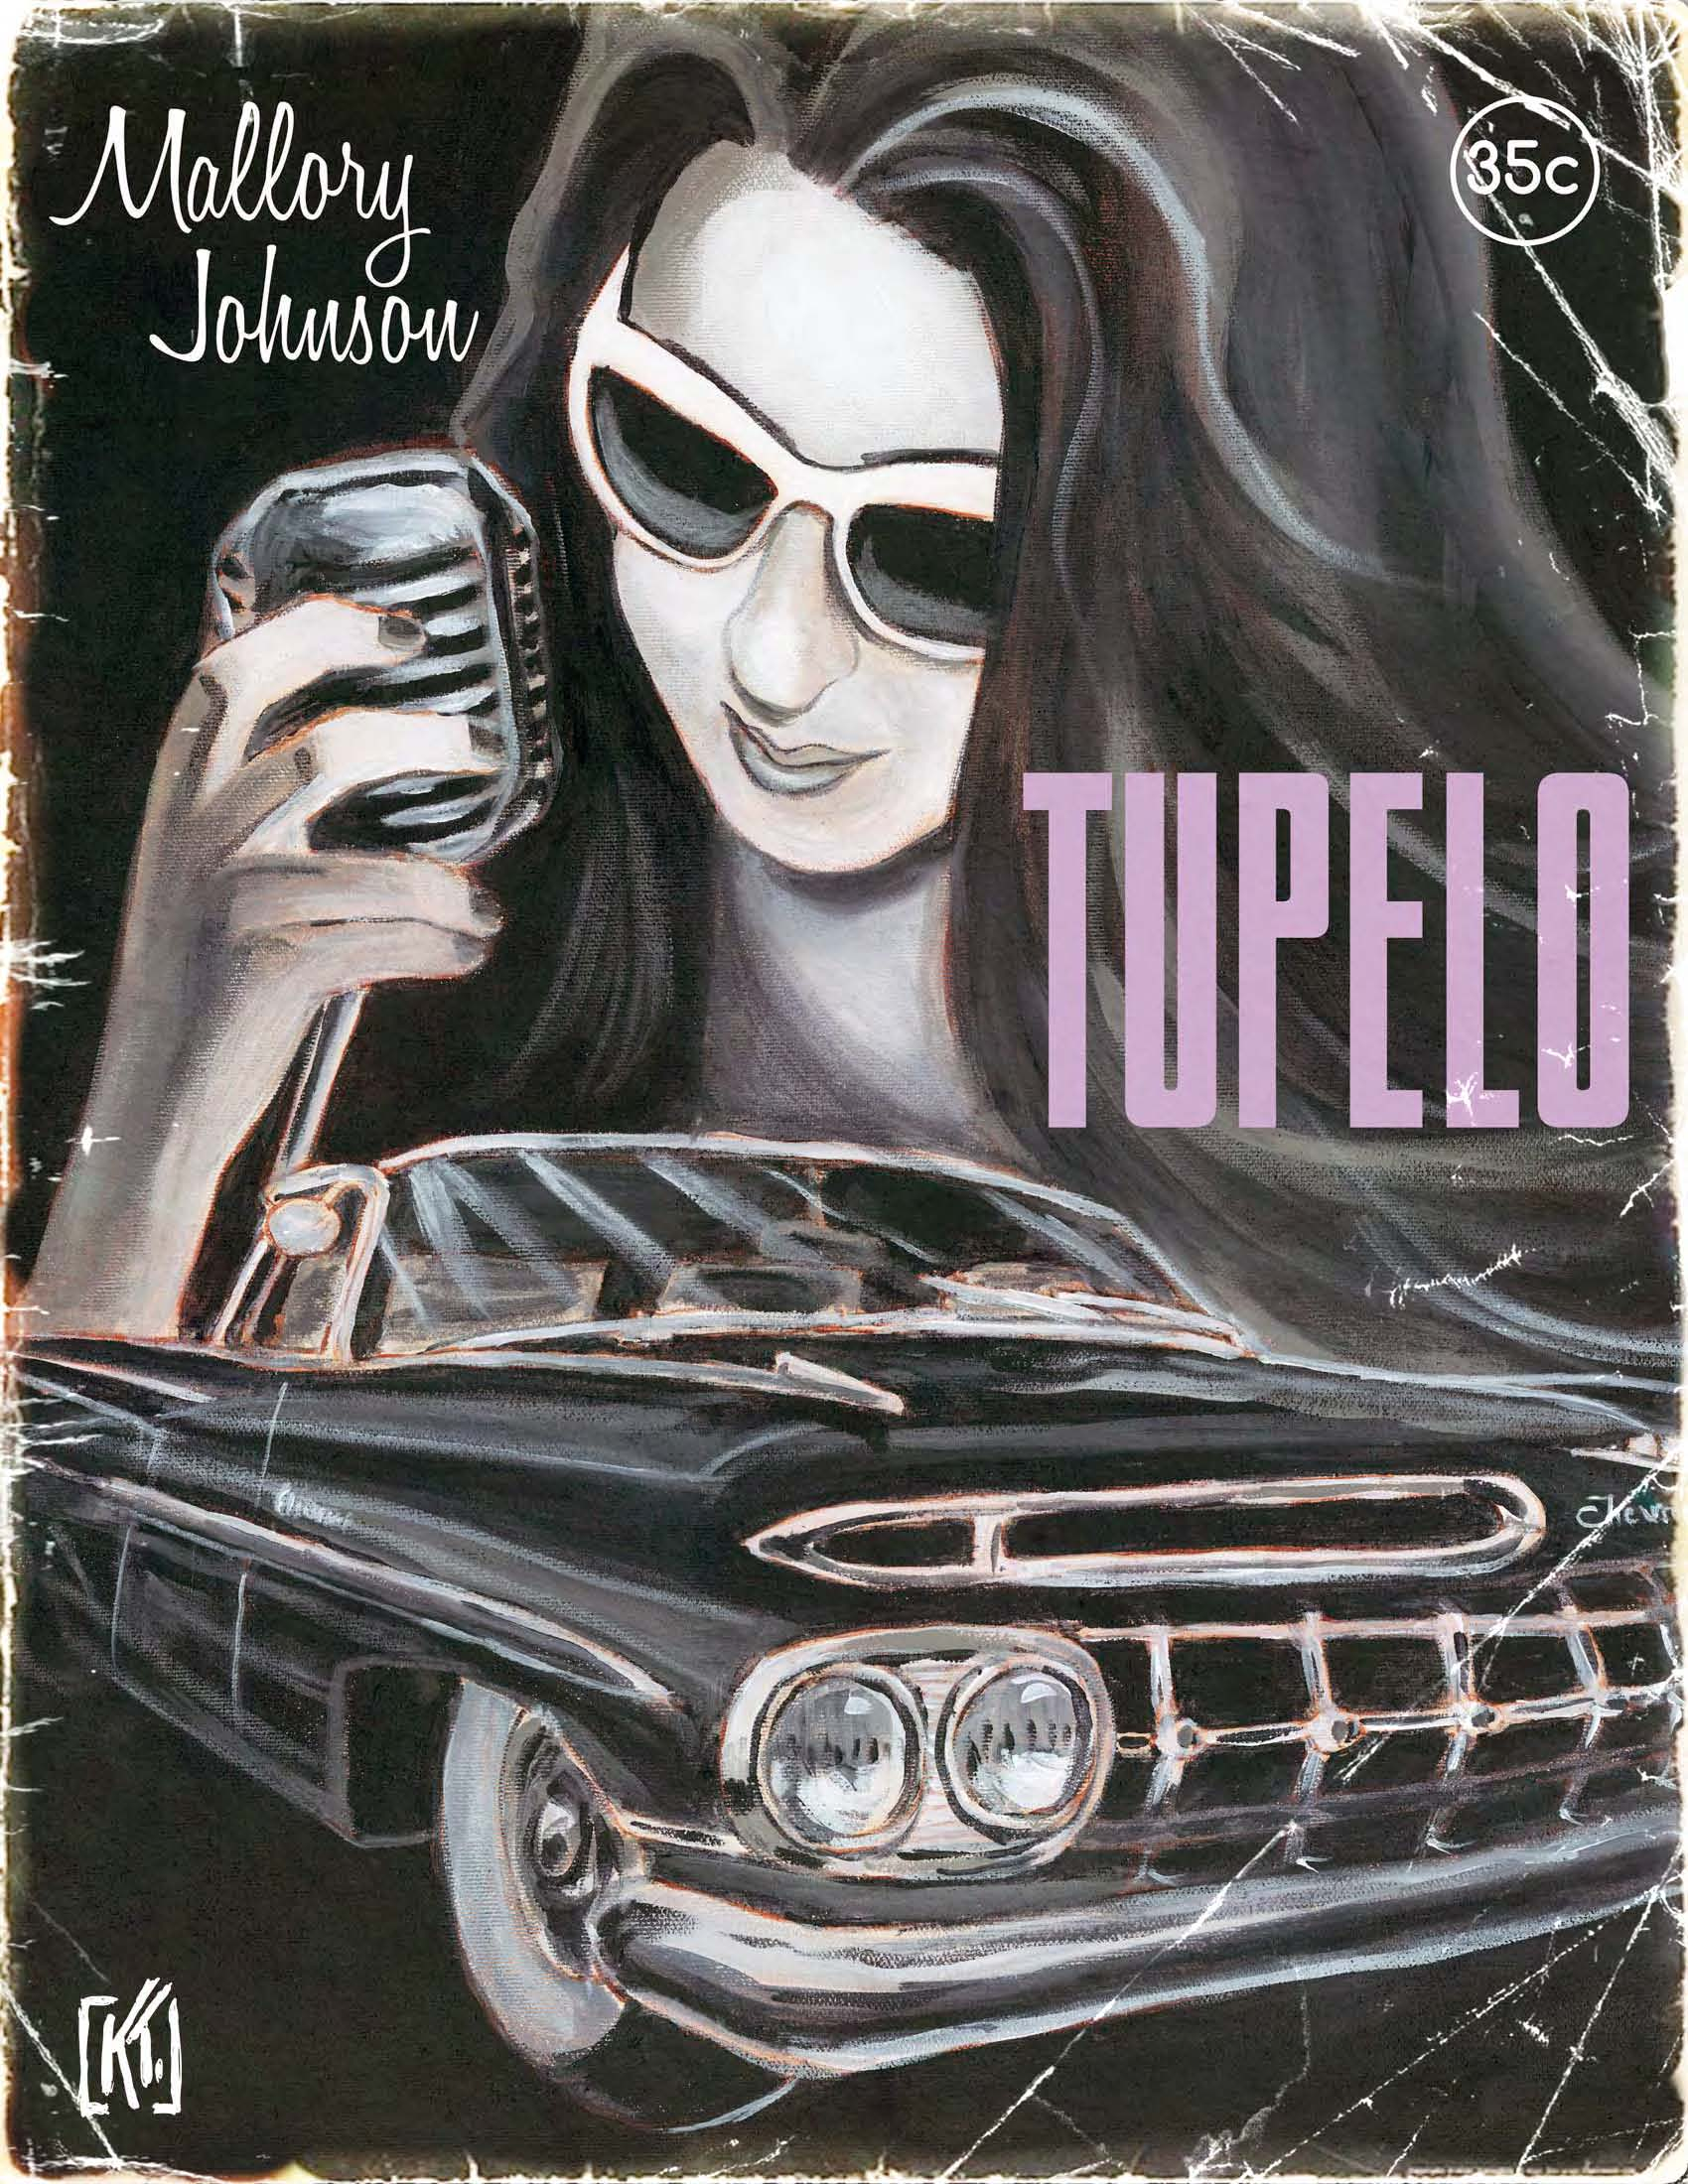 """Here is the the lovely illustration for """"Tupelo"""" by Kevin Tobin. Kevin painted 1950's pulp fiction-themed portraits for each song on my new record !!"""